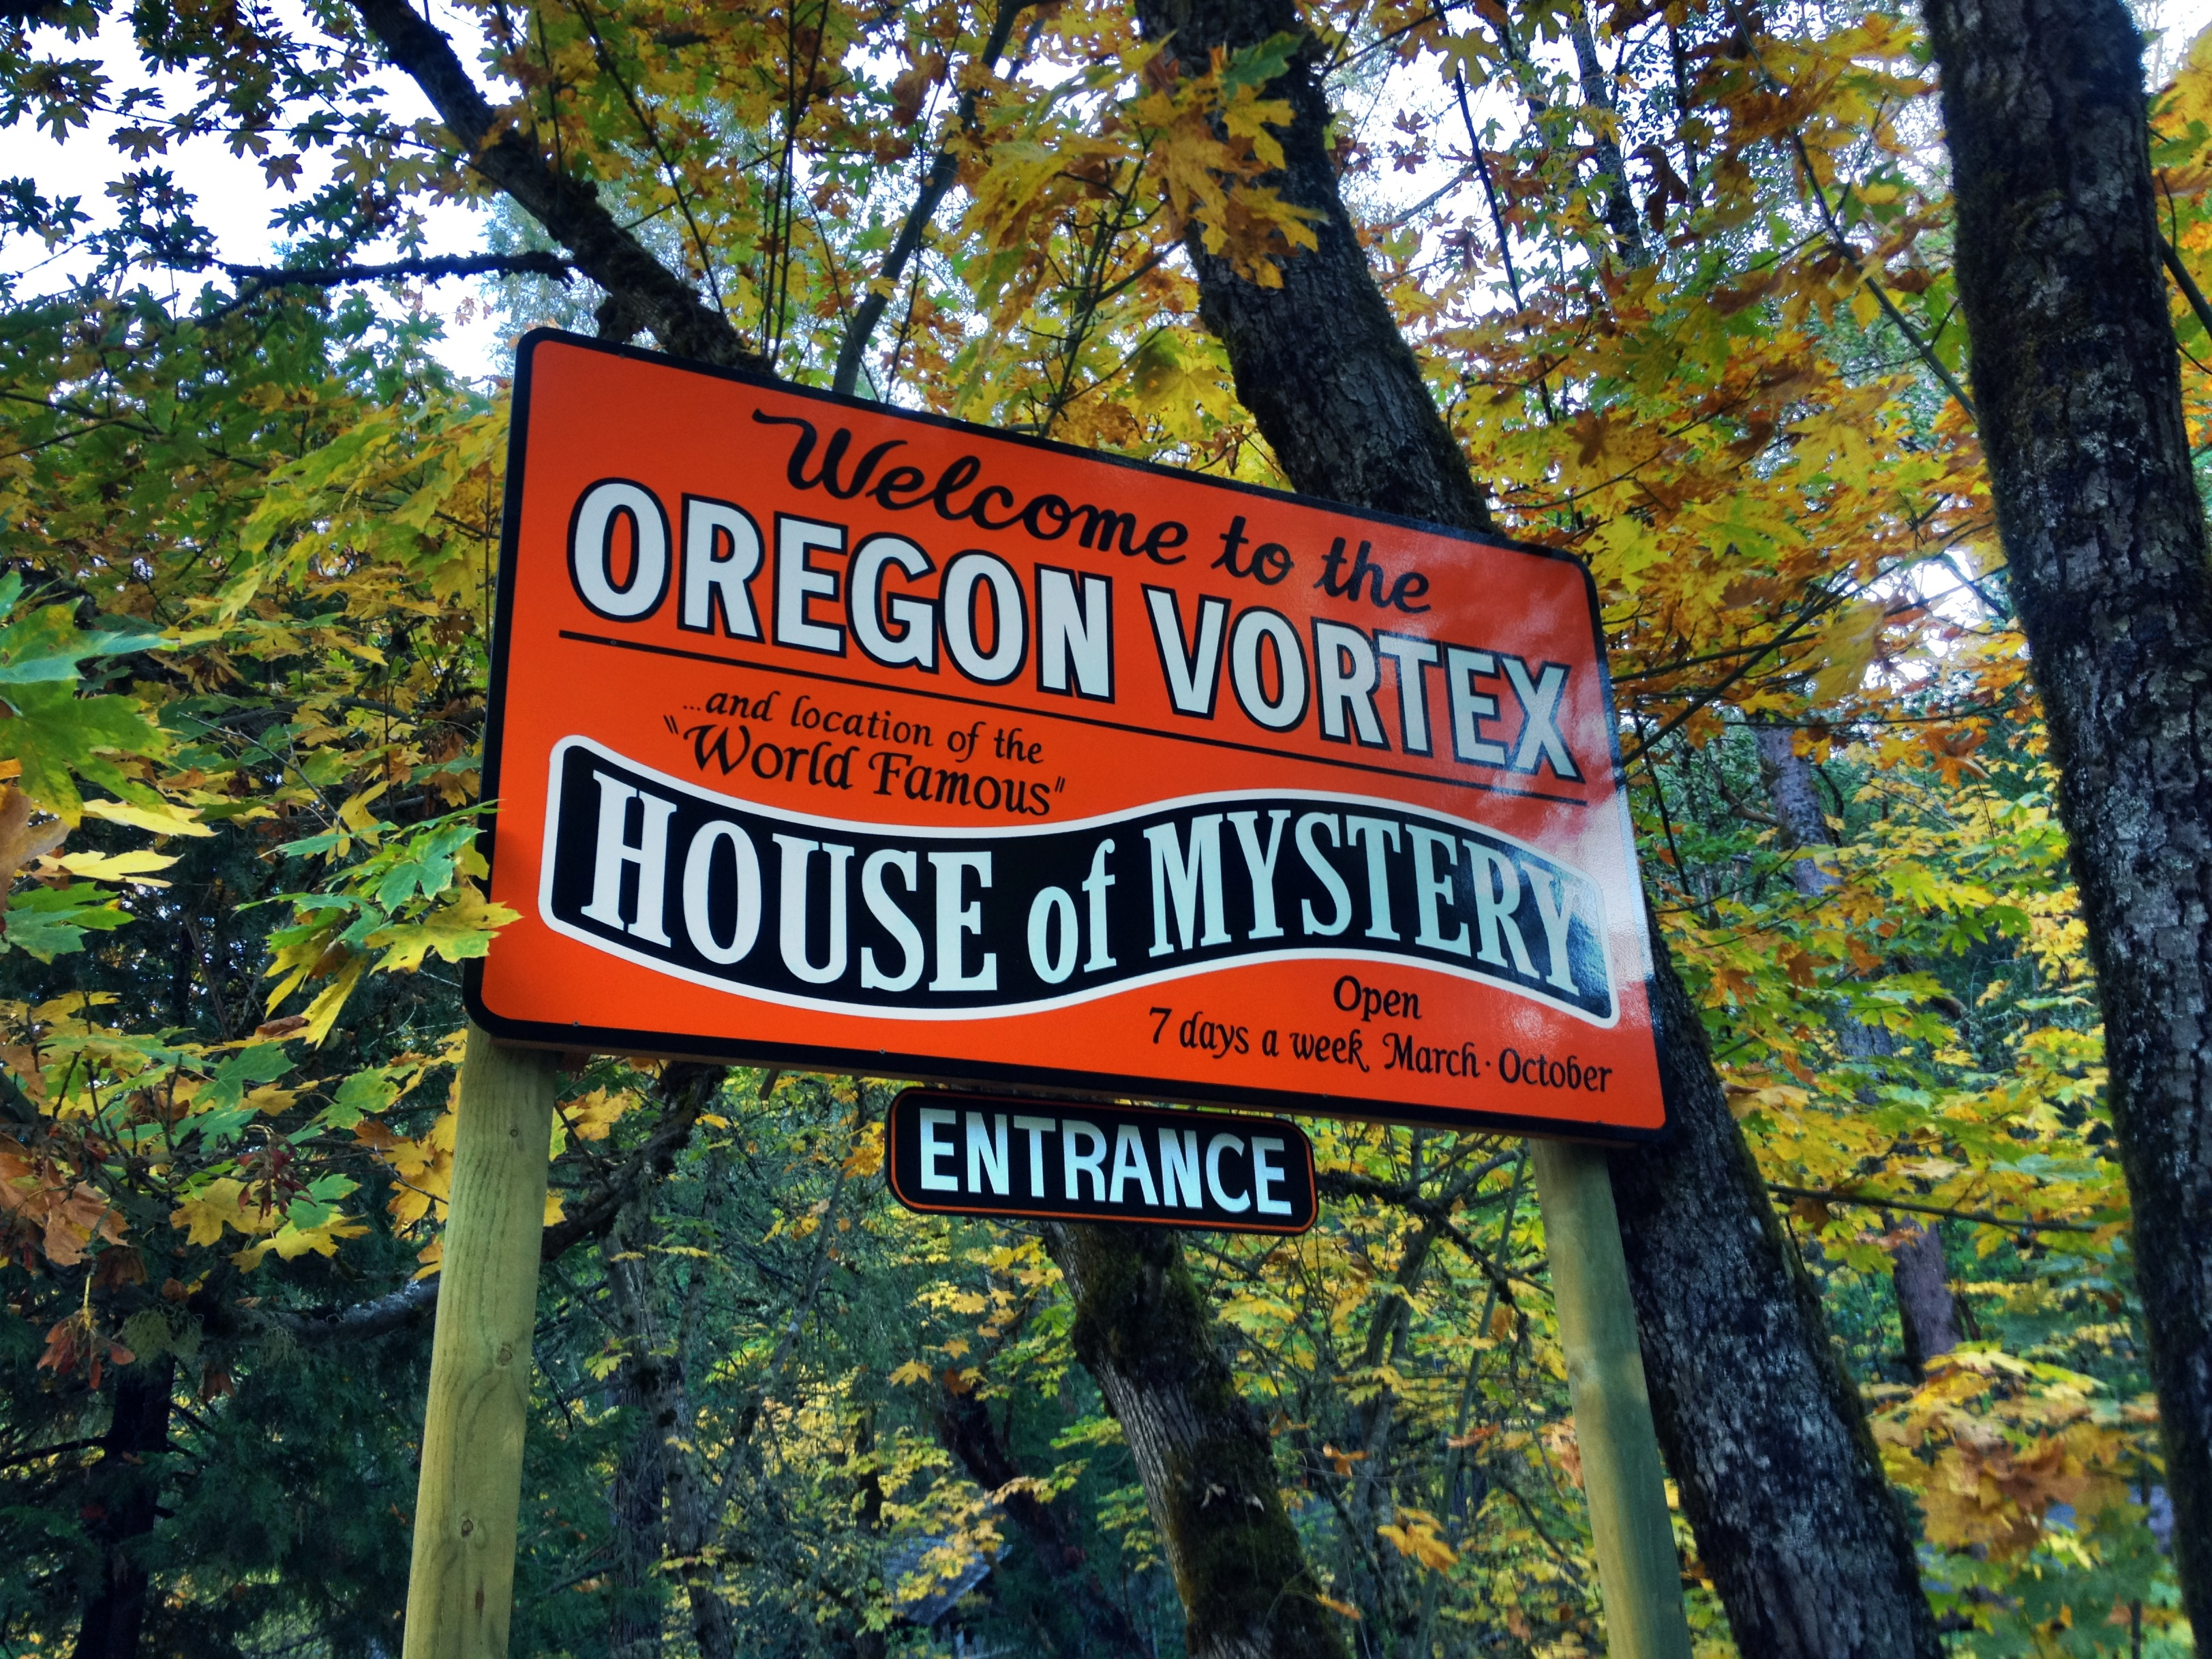 Oregon Vortex sign